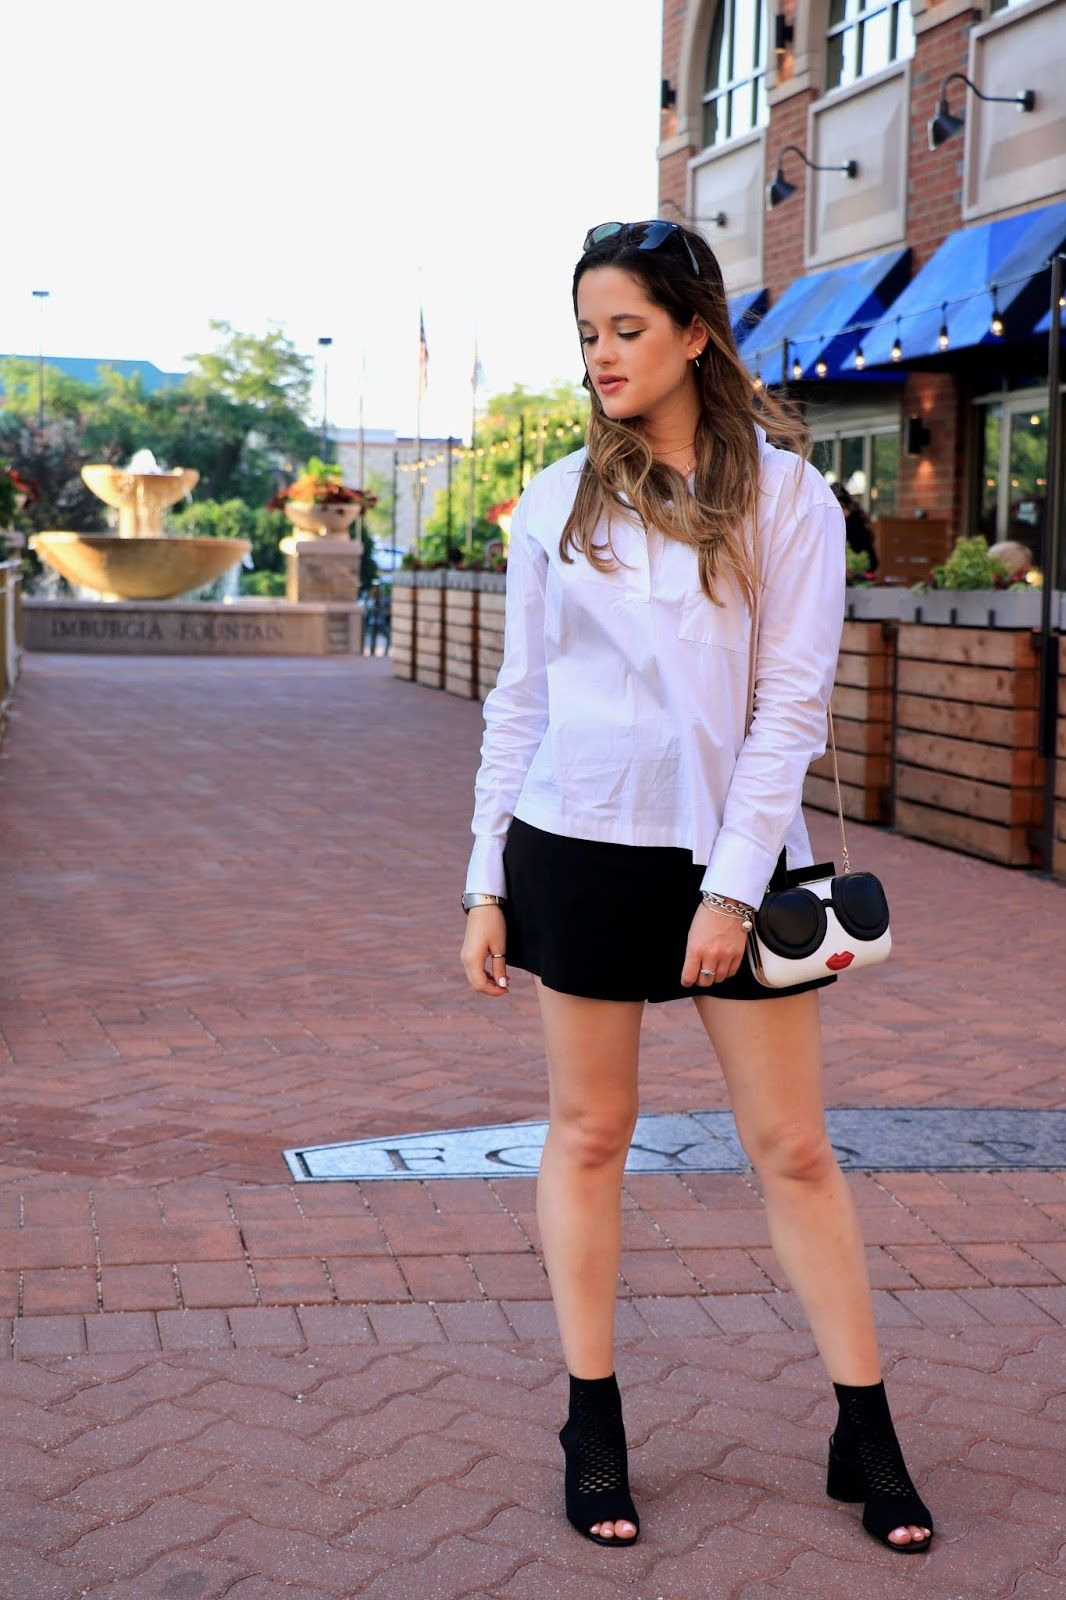 Fashion blogger outfit ideas kats fashion fixblog in